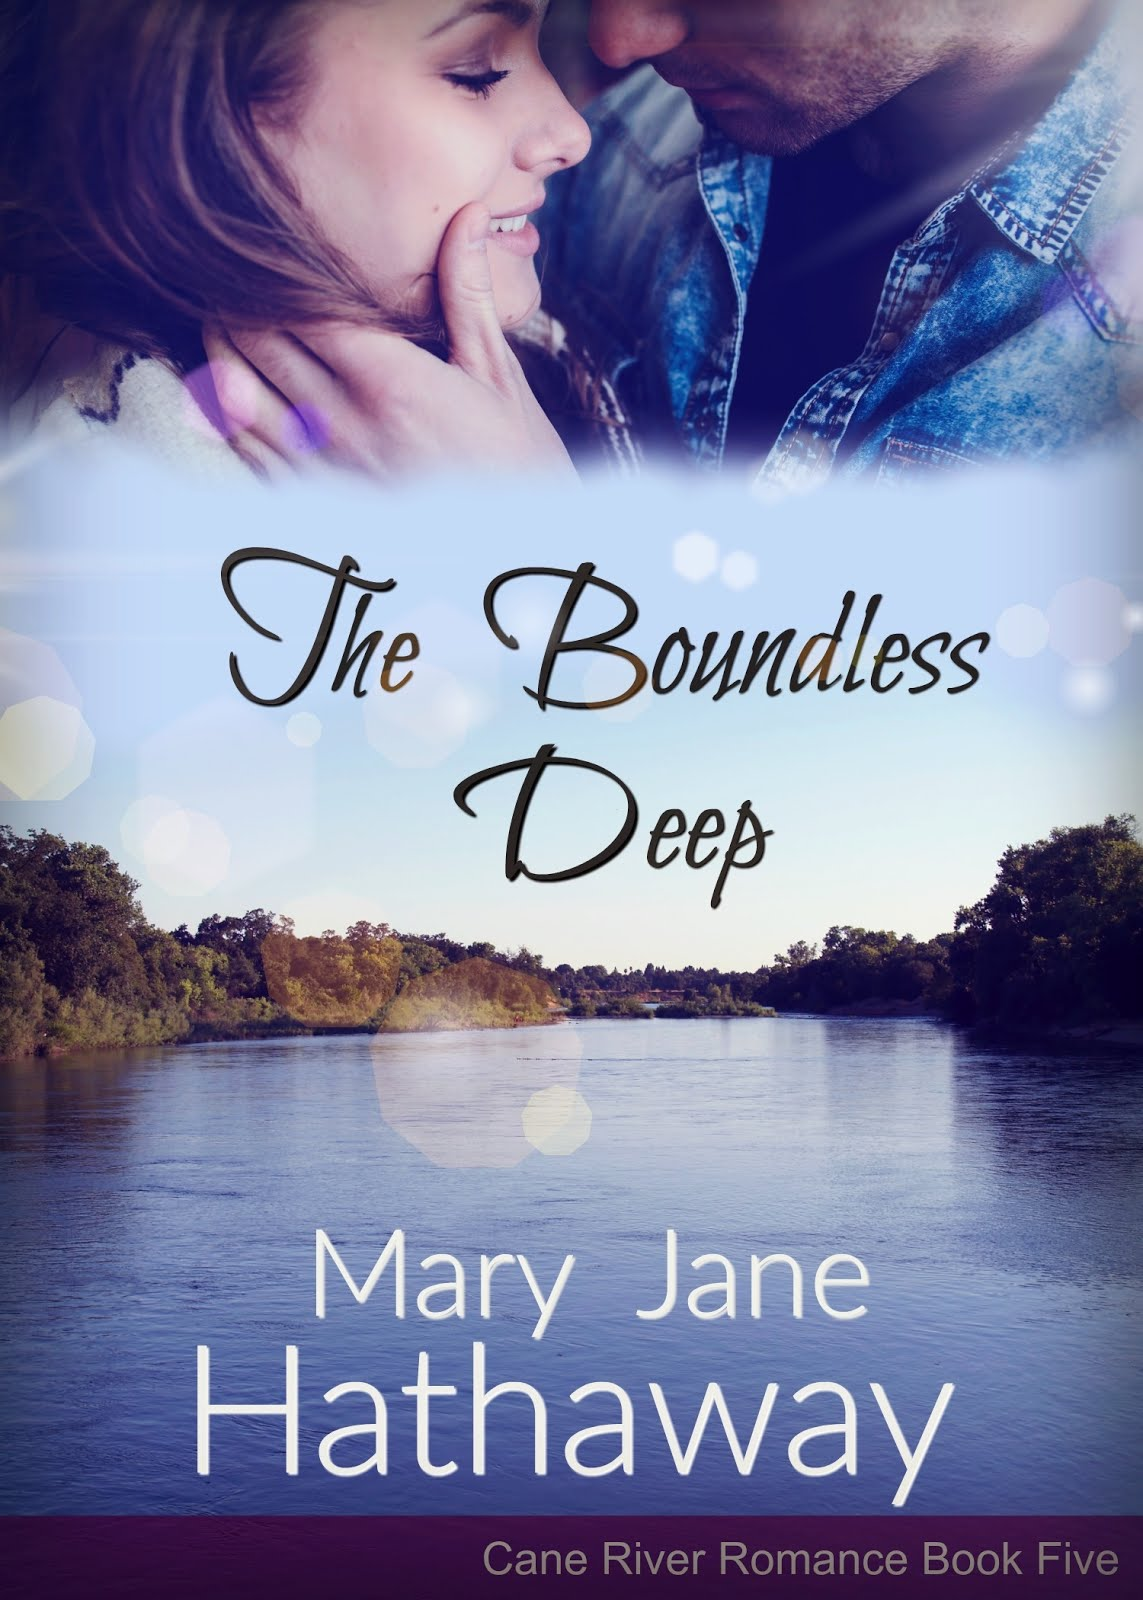 The Boundless Deep